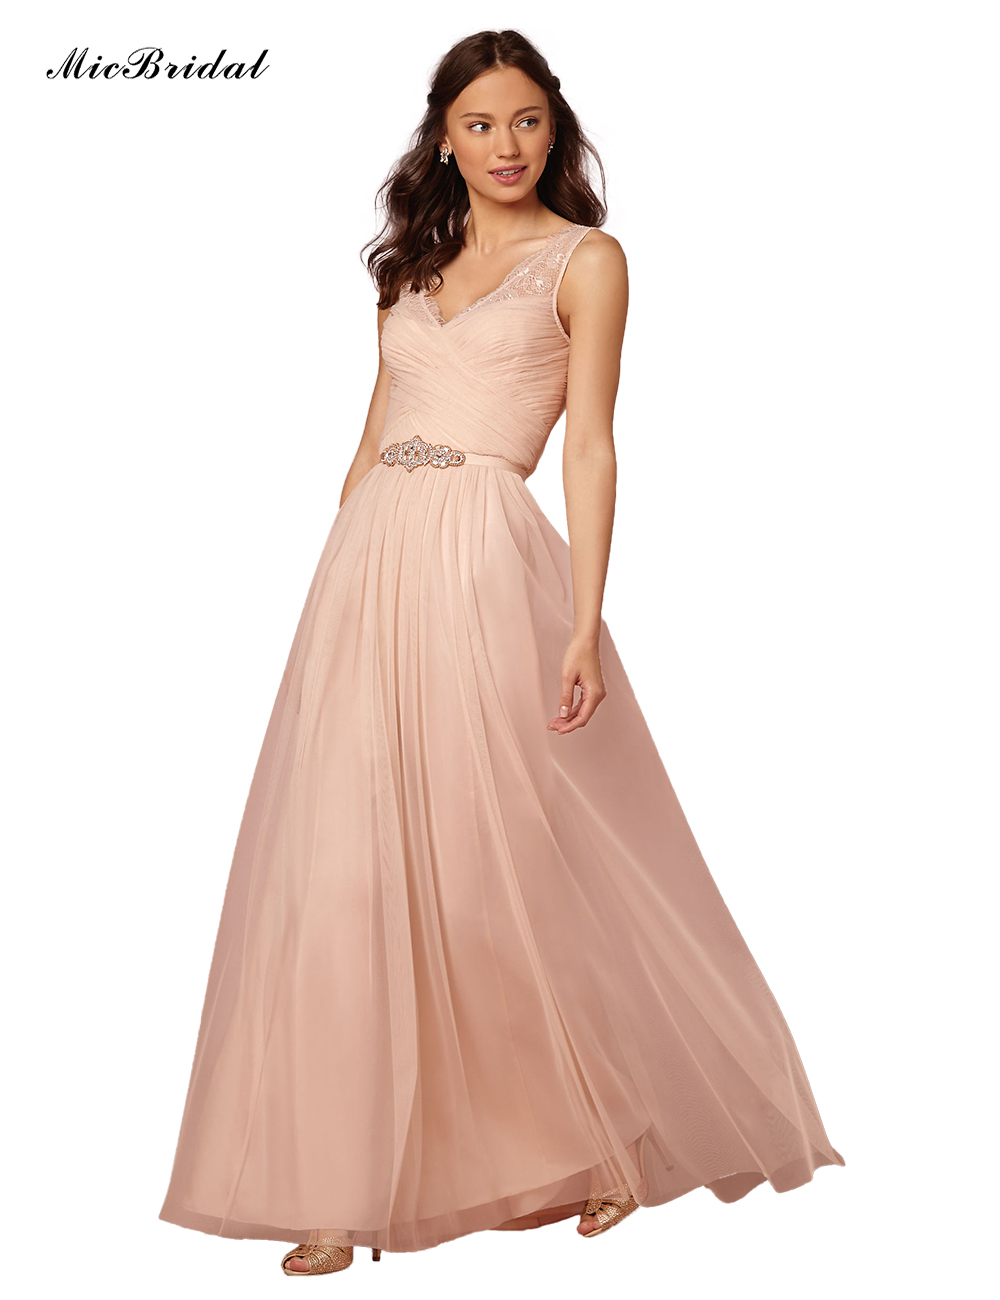 0de1c26487af QQ 003 High Quality V Open Back Print Chiffon Lace Long Peach Color  Bridesmaid Dress-in Bridesmaid Dresses from Weddings   Events on  Aliexpress.com ...